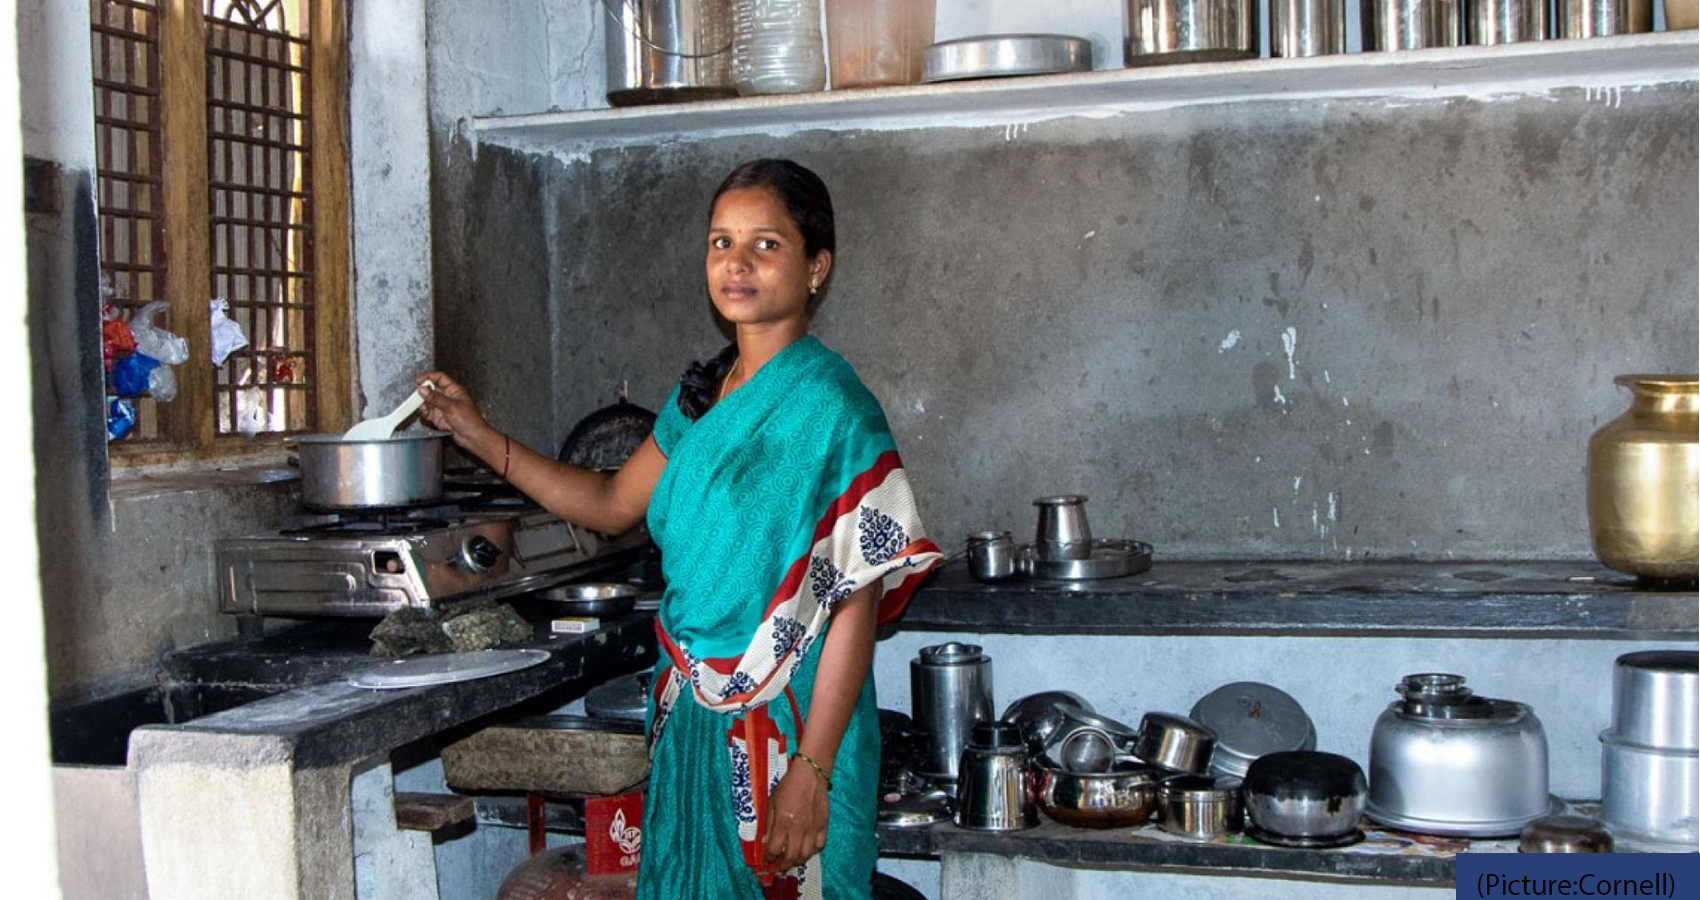 Indian Women's Nutrition Suffered During COVID-19 Lockdown